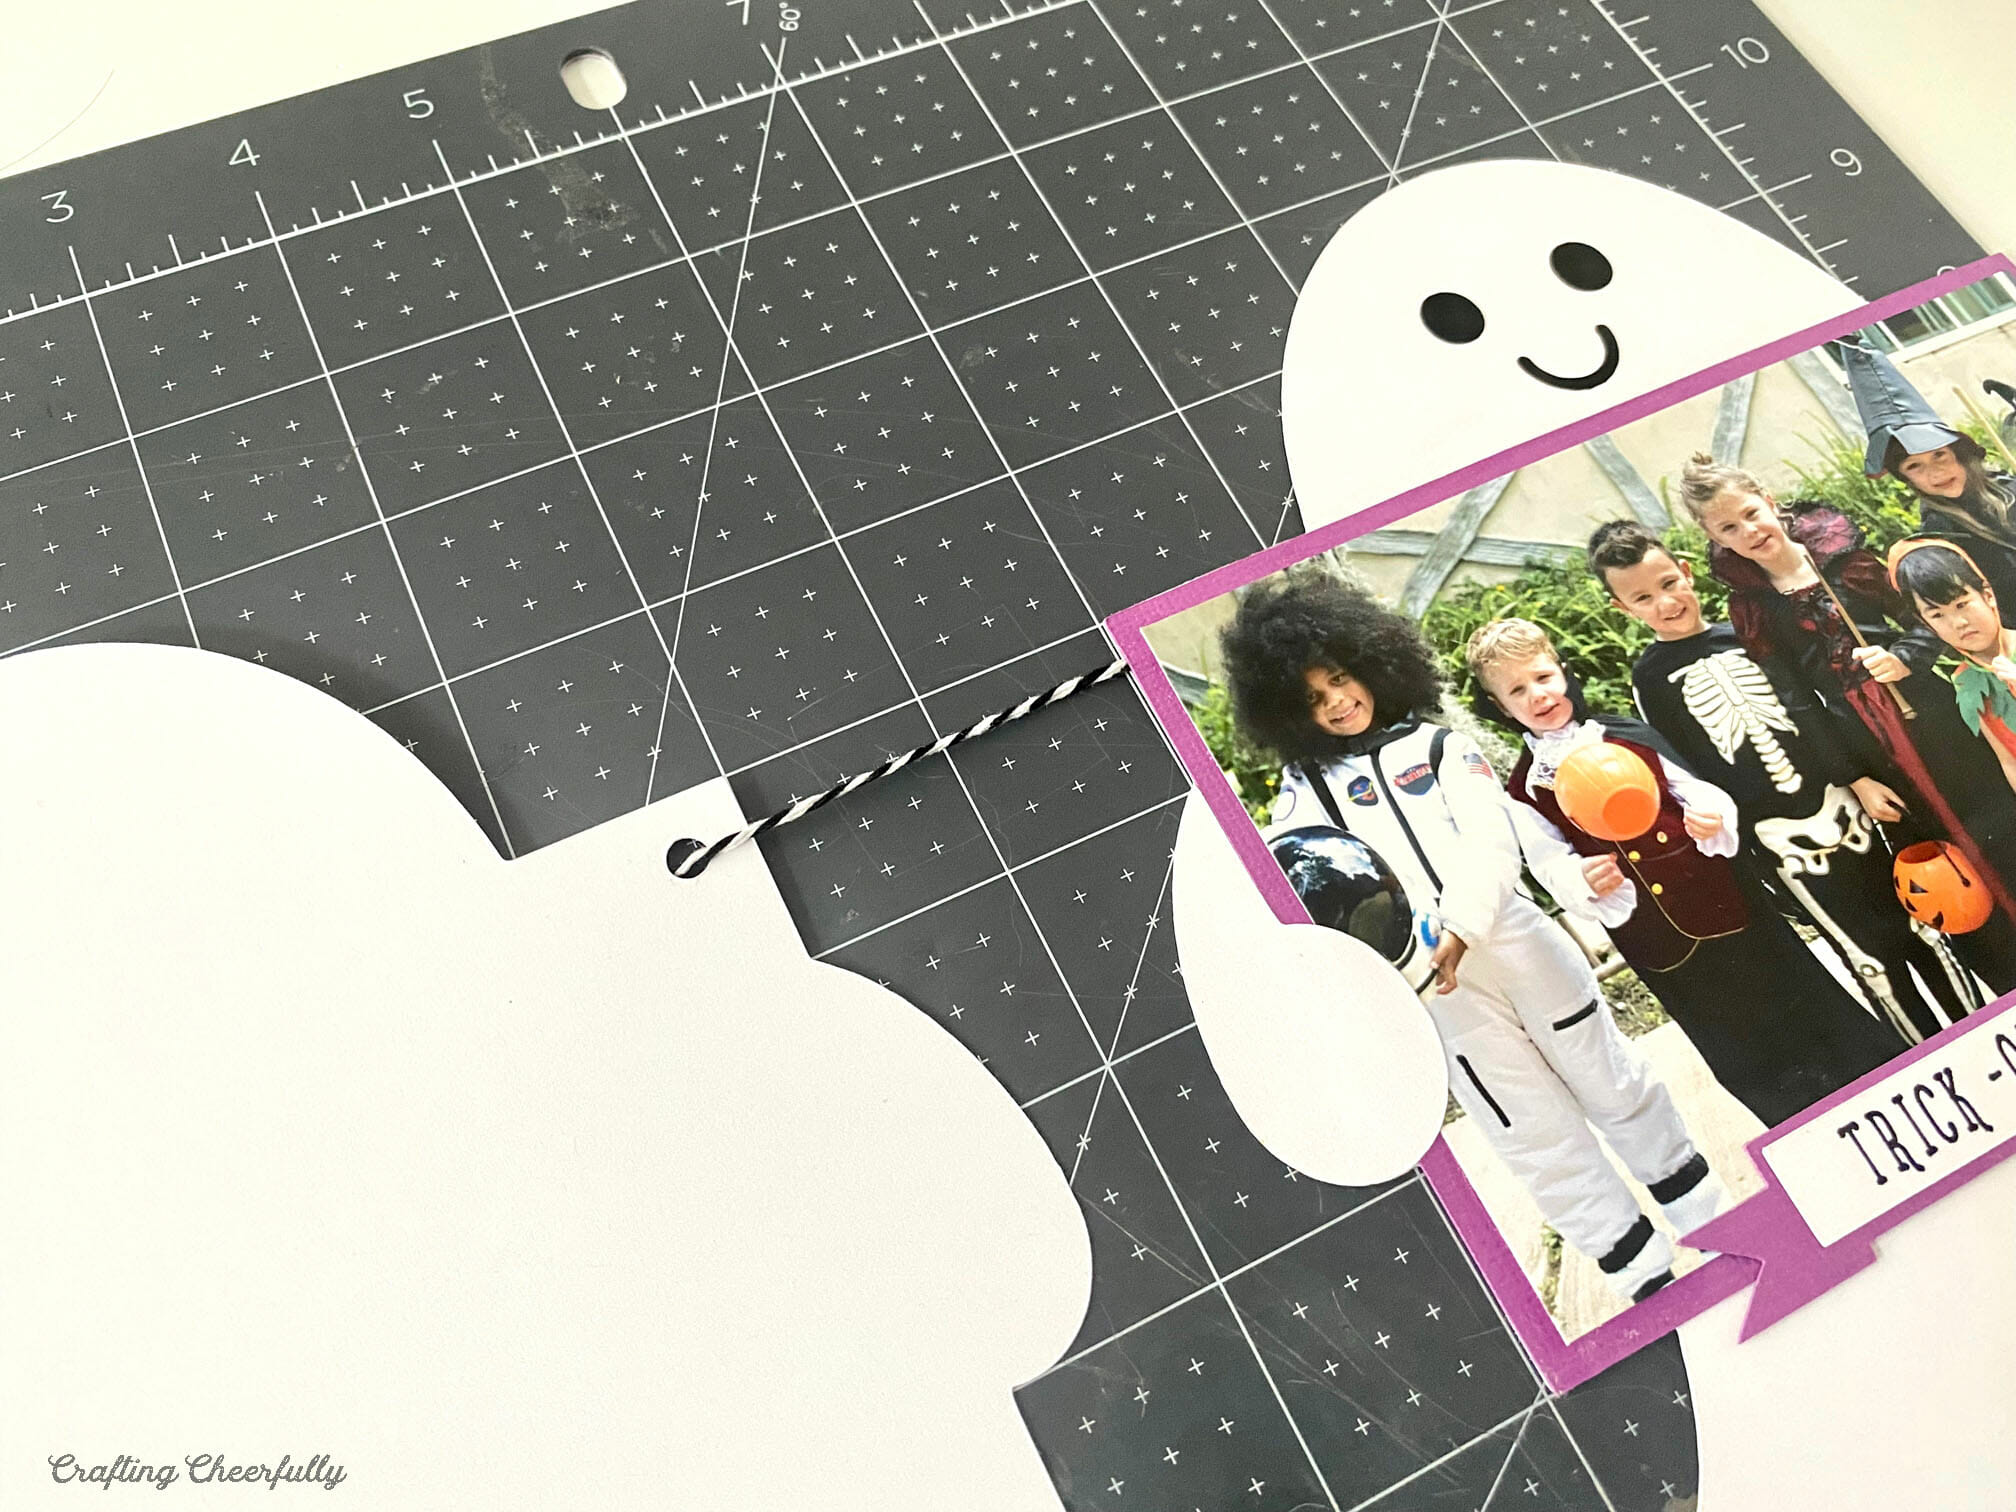 Two paper ghosts connect by black and white Baker's twine to form a banner lay on a black cutting mat.